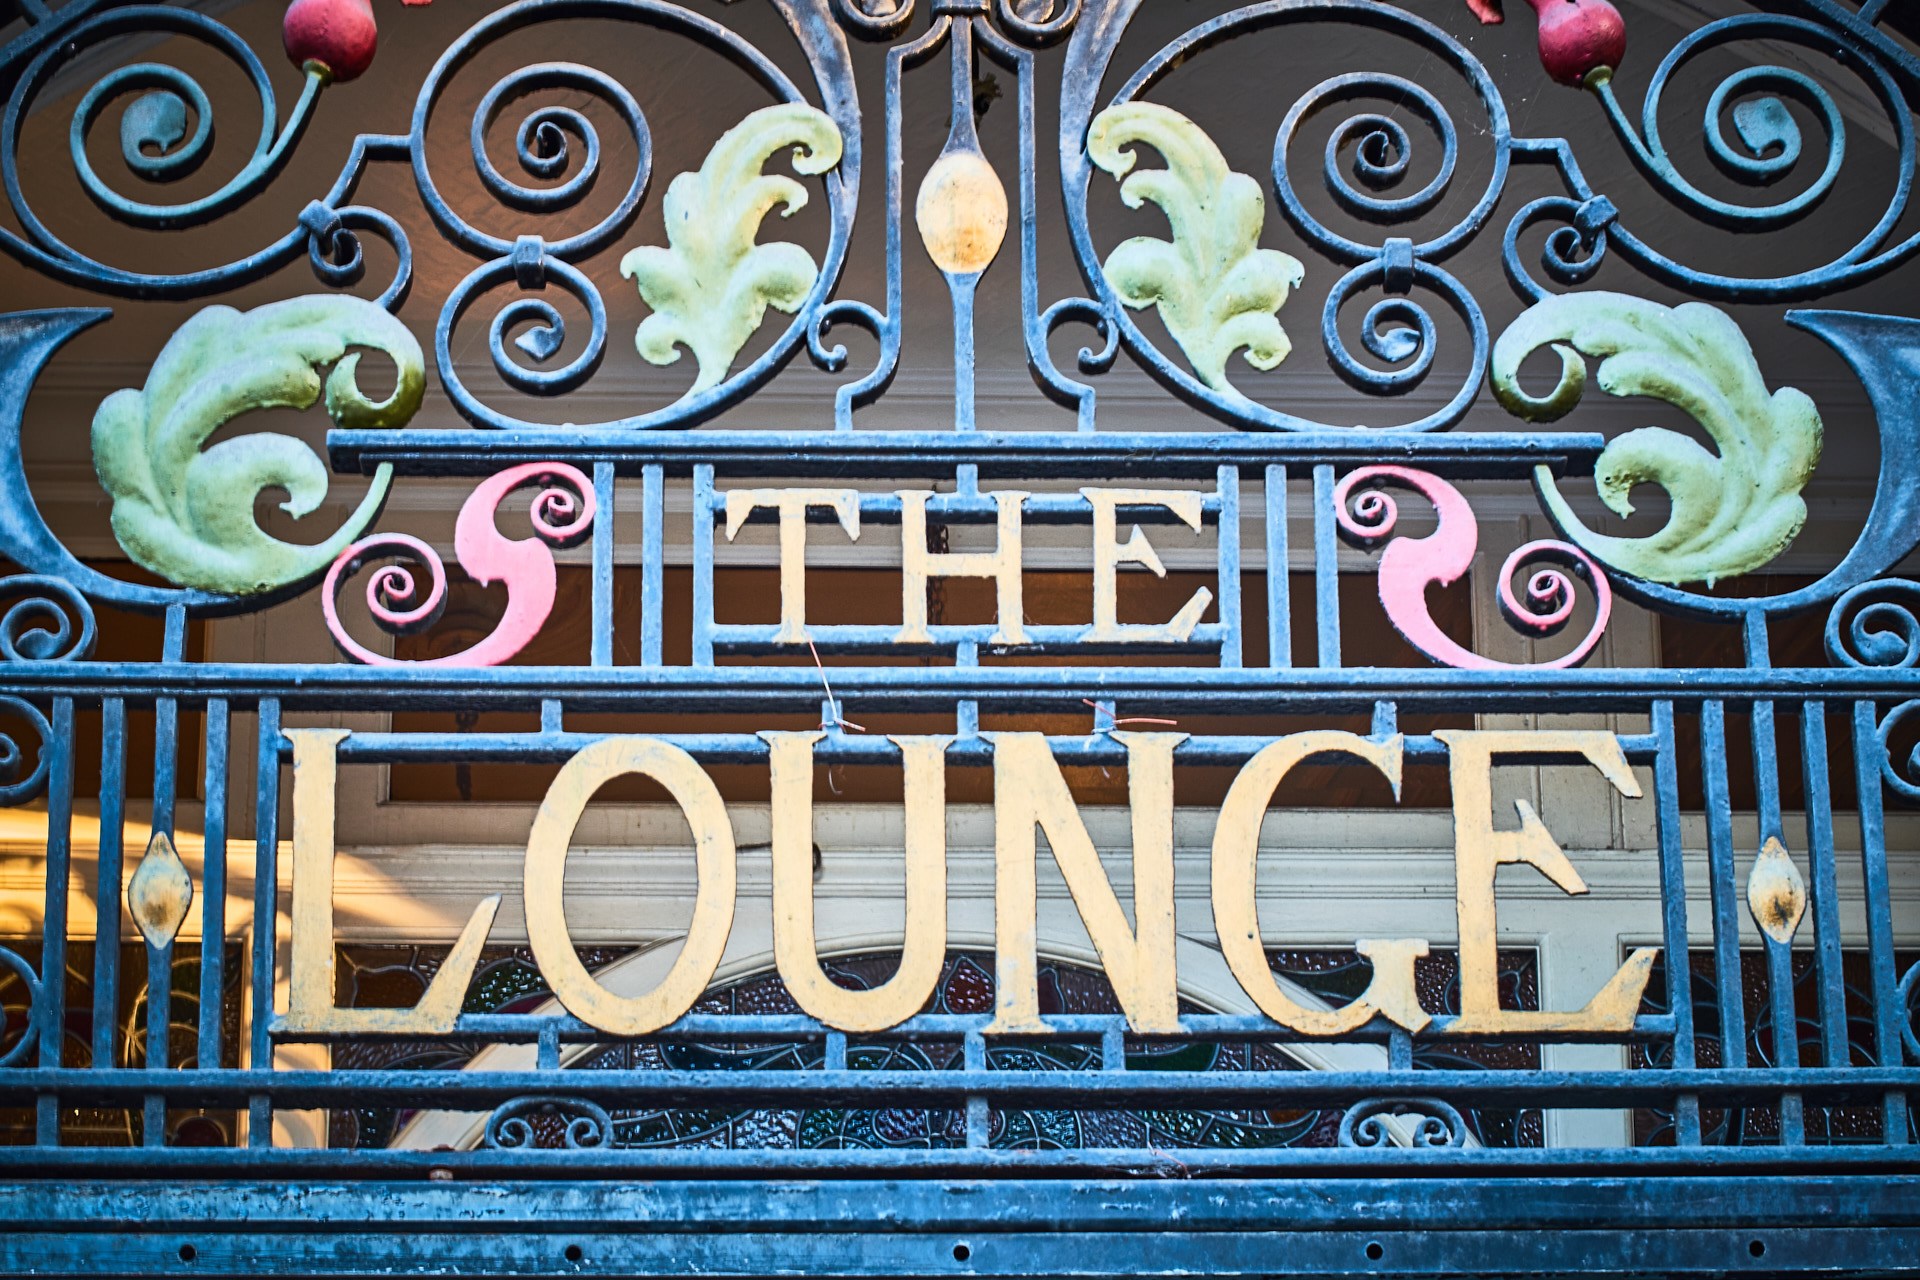 The Lounge sign.